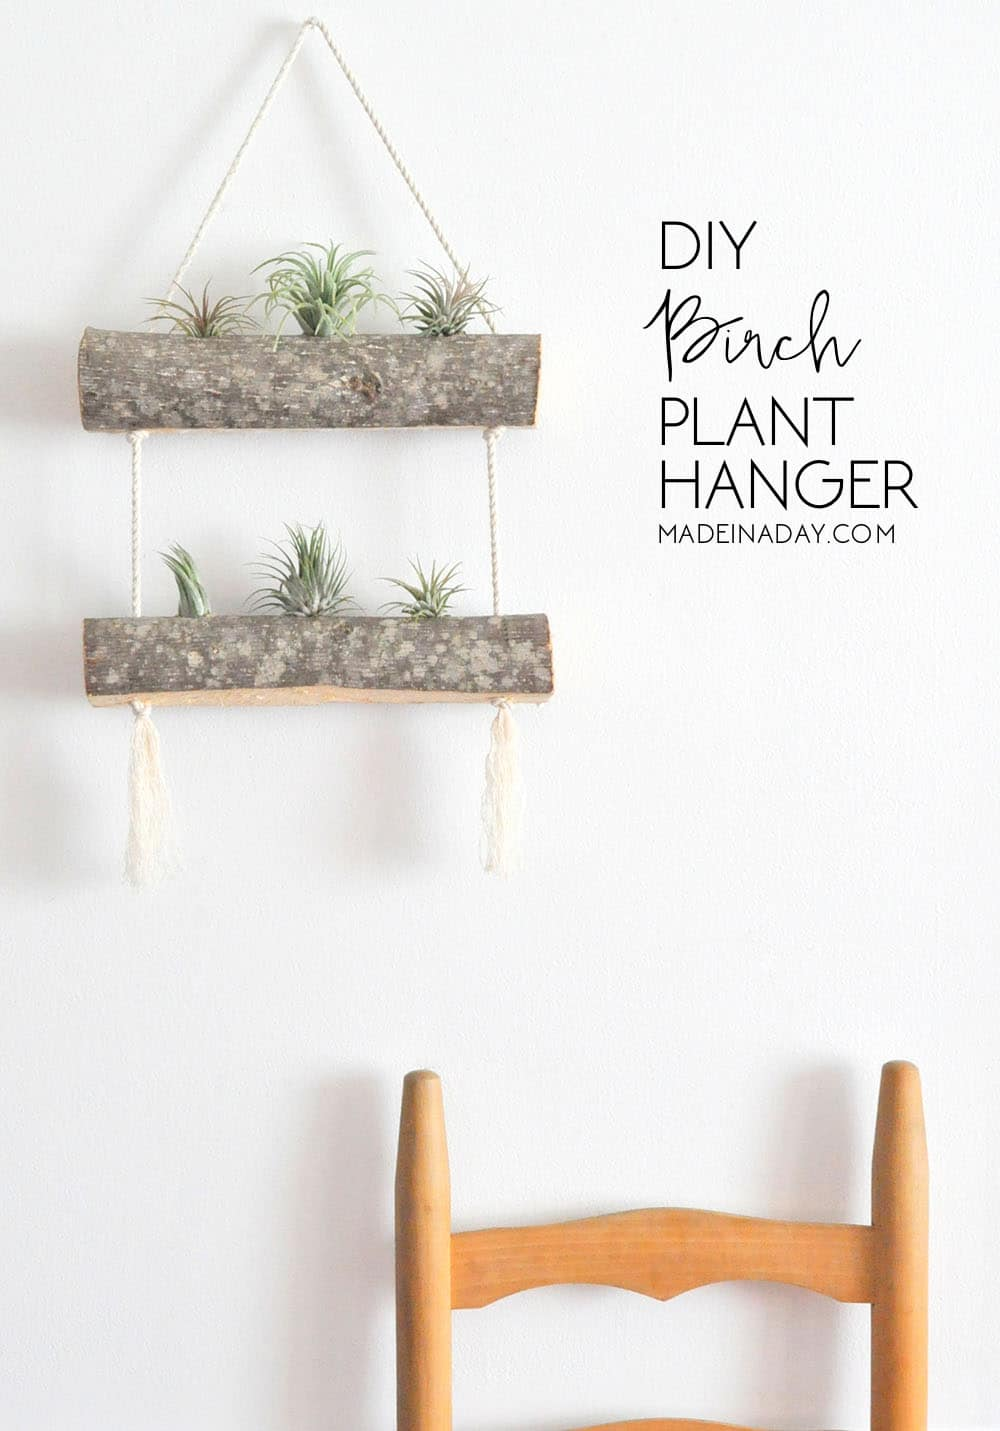 DIY Birch Air Plant Hanger 7